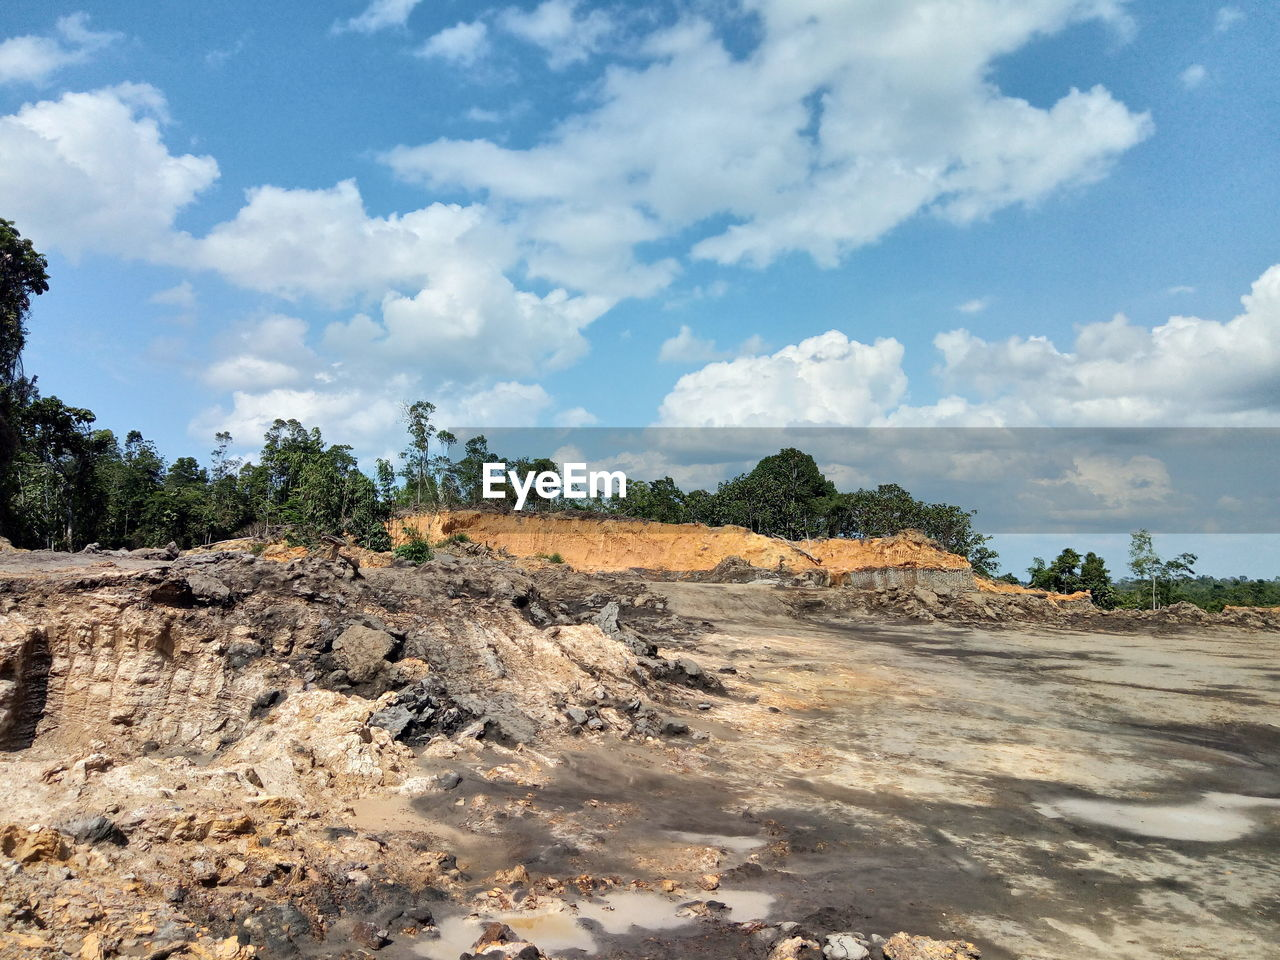 sky, cloud - sky, environment, nature, landscape, day, non-urban scene, scenics - nature, land, tree, tranquil scene, tranquility, no people, beauty in nature, plant, smoke - physical structure, outdoors, steam, environmental issues, heat - temperature, pollution, quarry